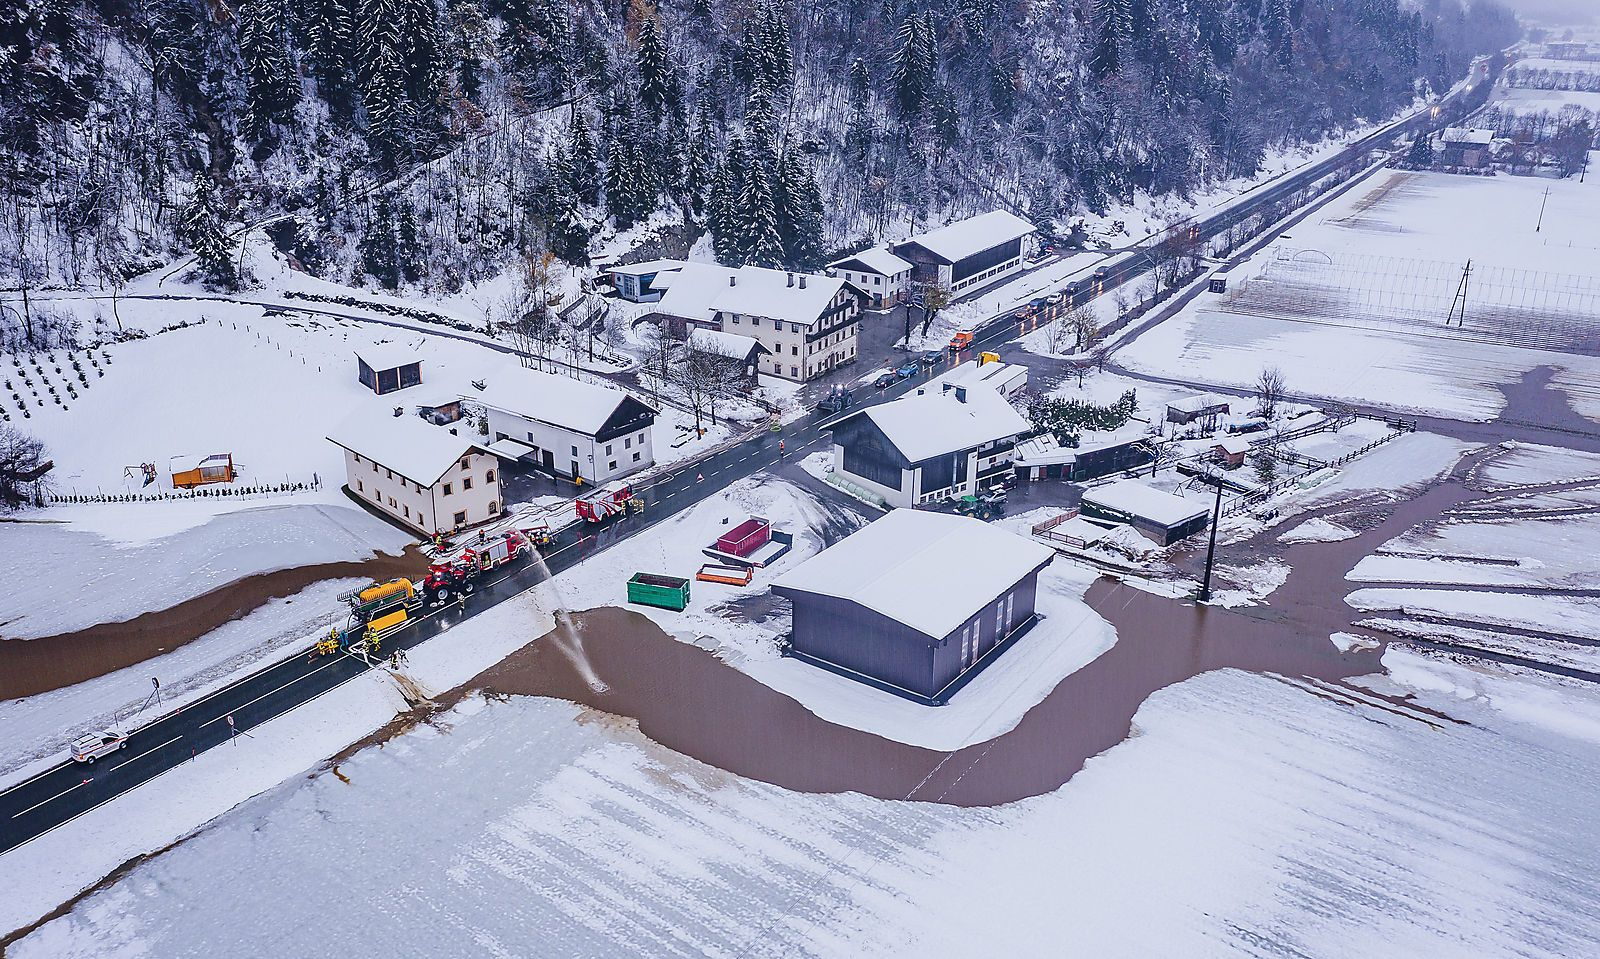 WINTEREINBRUCH IN OeSTERREICH: SITUATION IN DOeLSACH / OSTTIROL